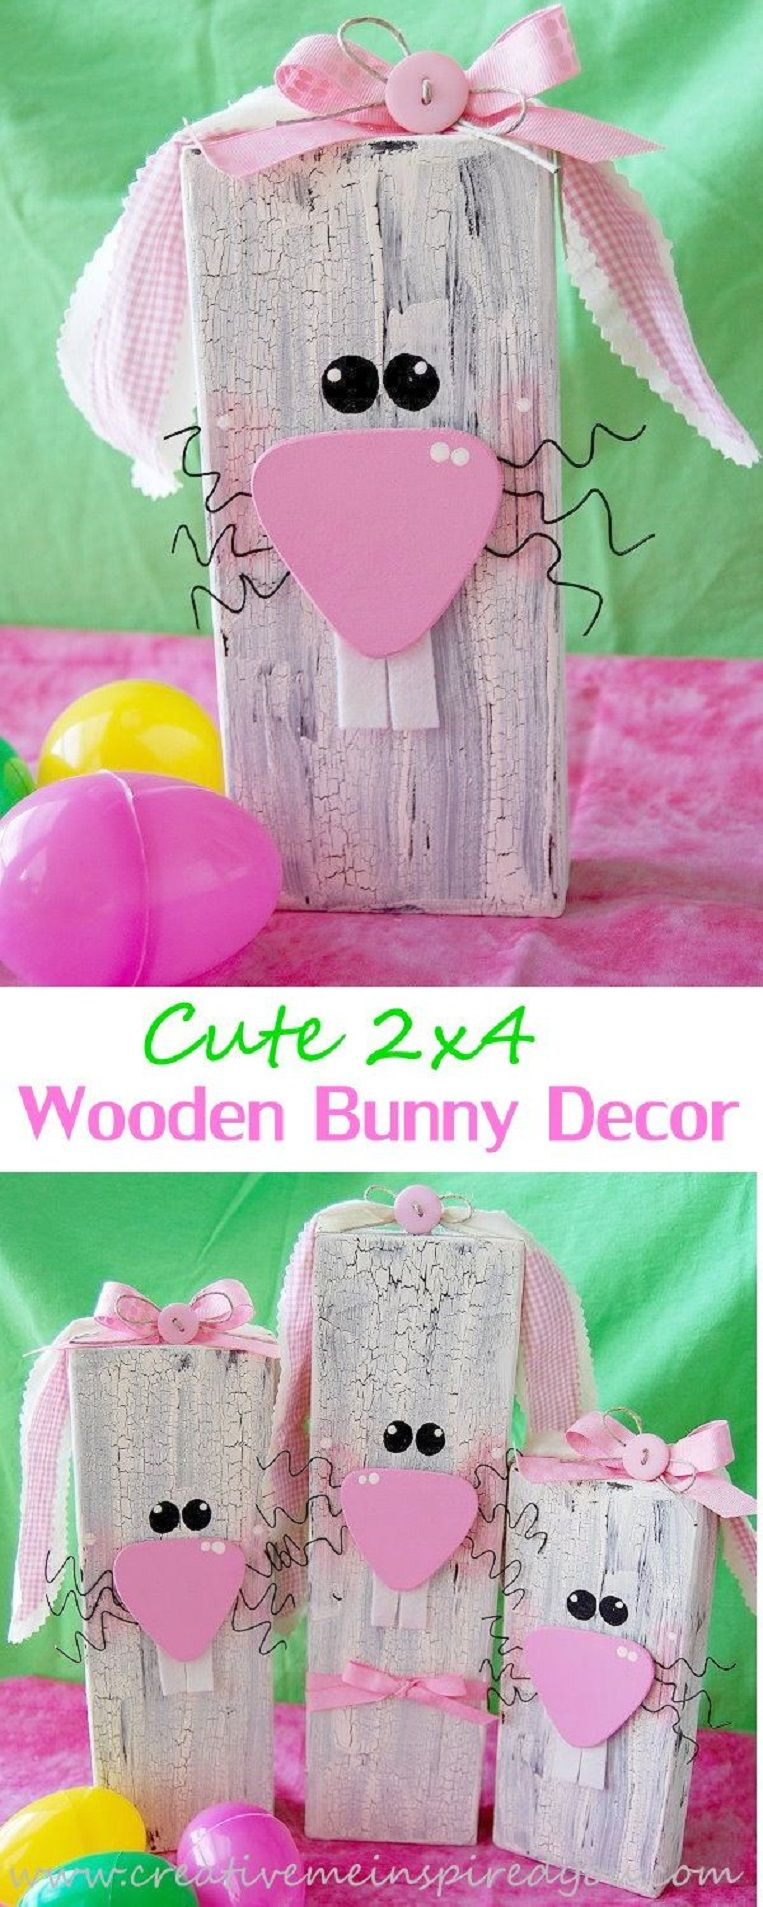 2x4 Wooden Bunnies Easter Crafts Easter Crafts For Adults